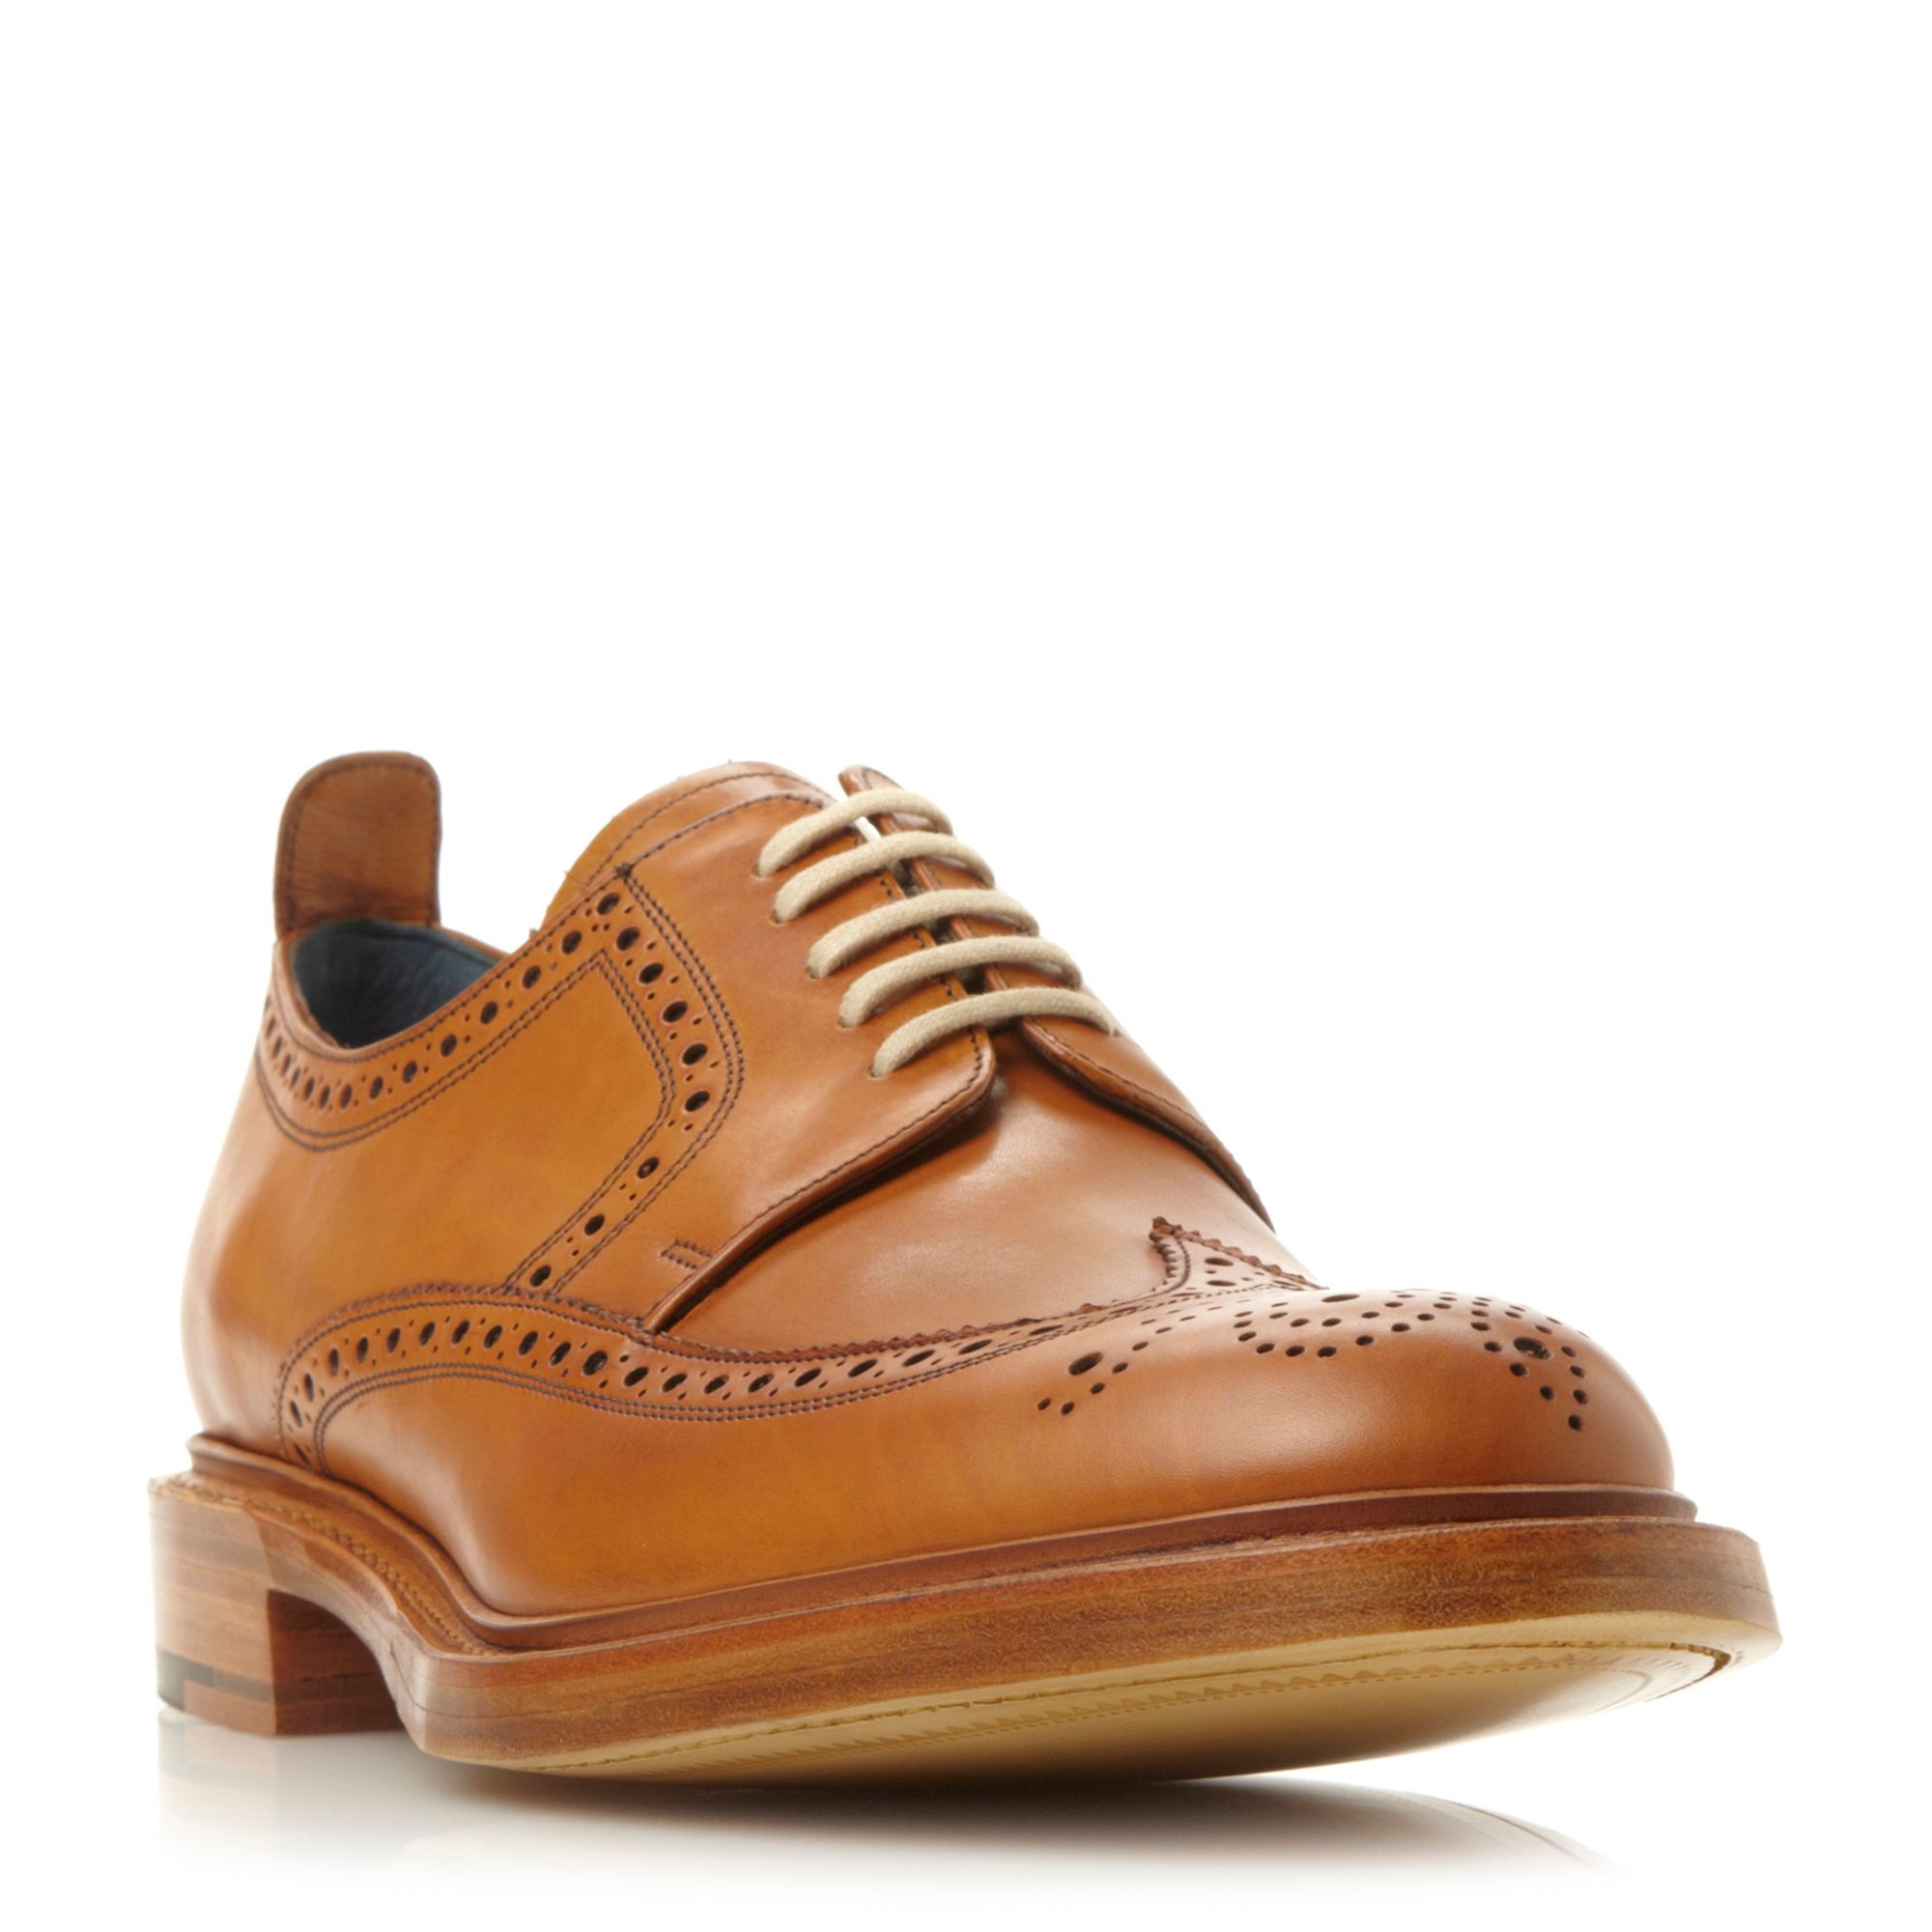 Barker Barker Bailey leather lace up brogues, Tan